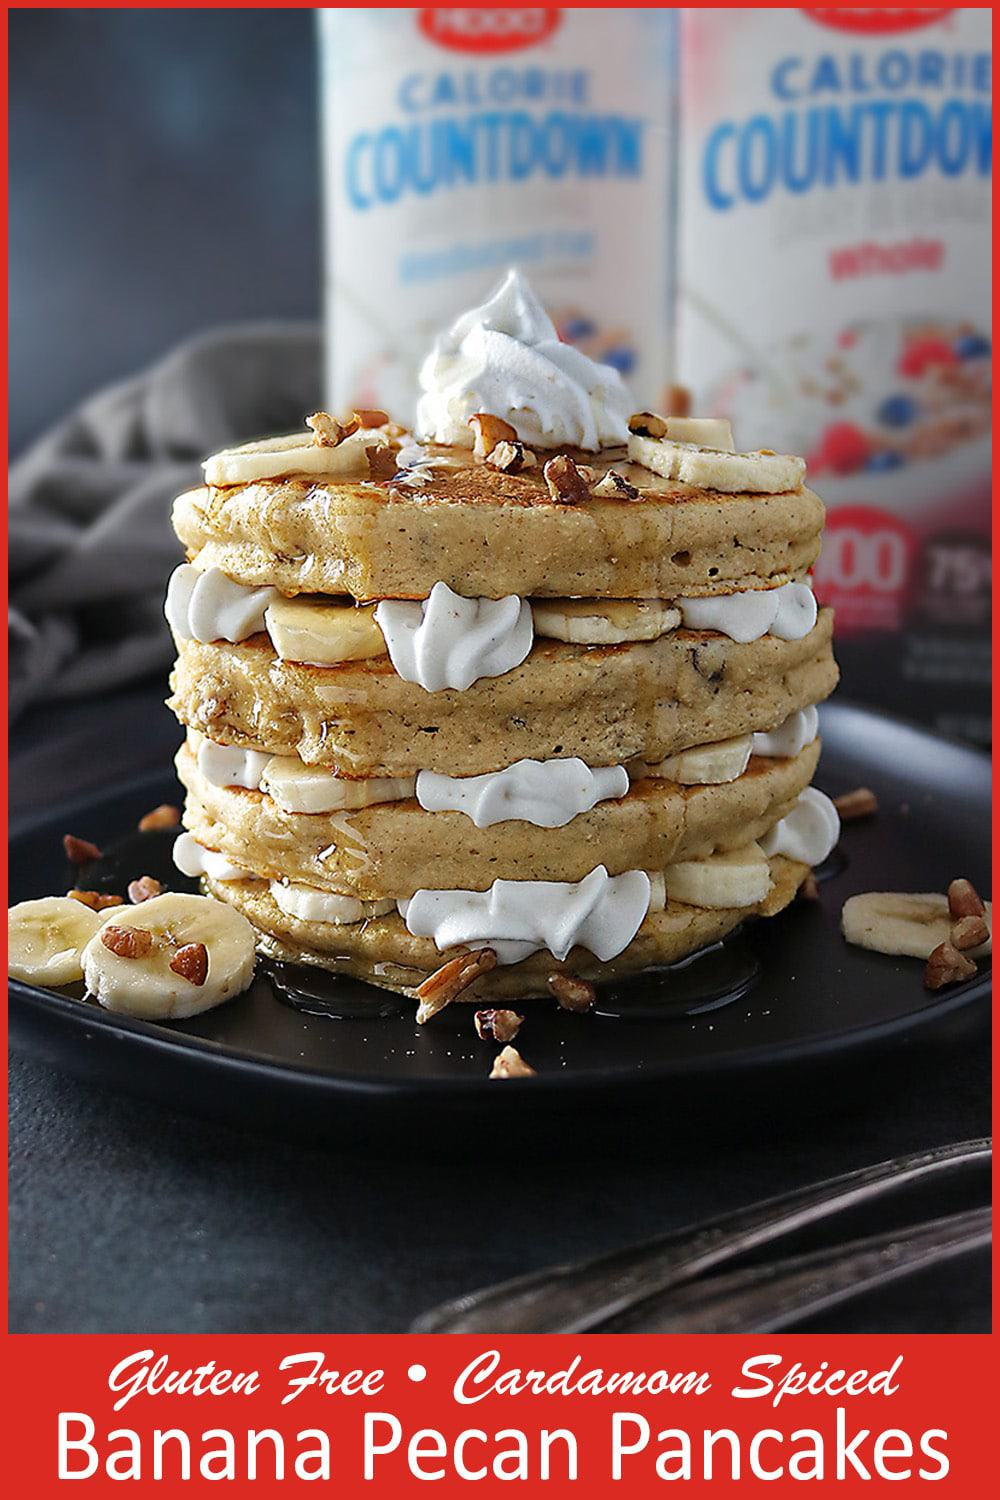 Stack of Gluten Free, Cardamom Spiced, Pecan Banana Pancakes with layers of bananas and whipped cream. #ad #CalorieCountdown #IC @hphood